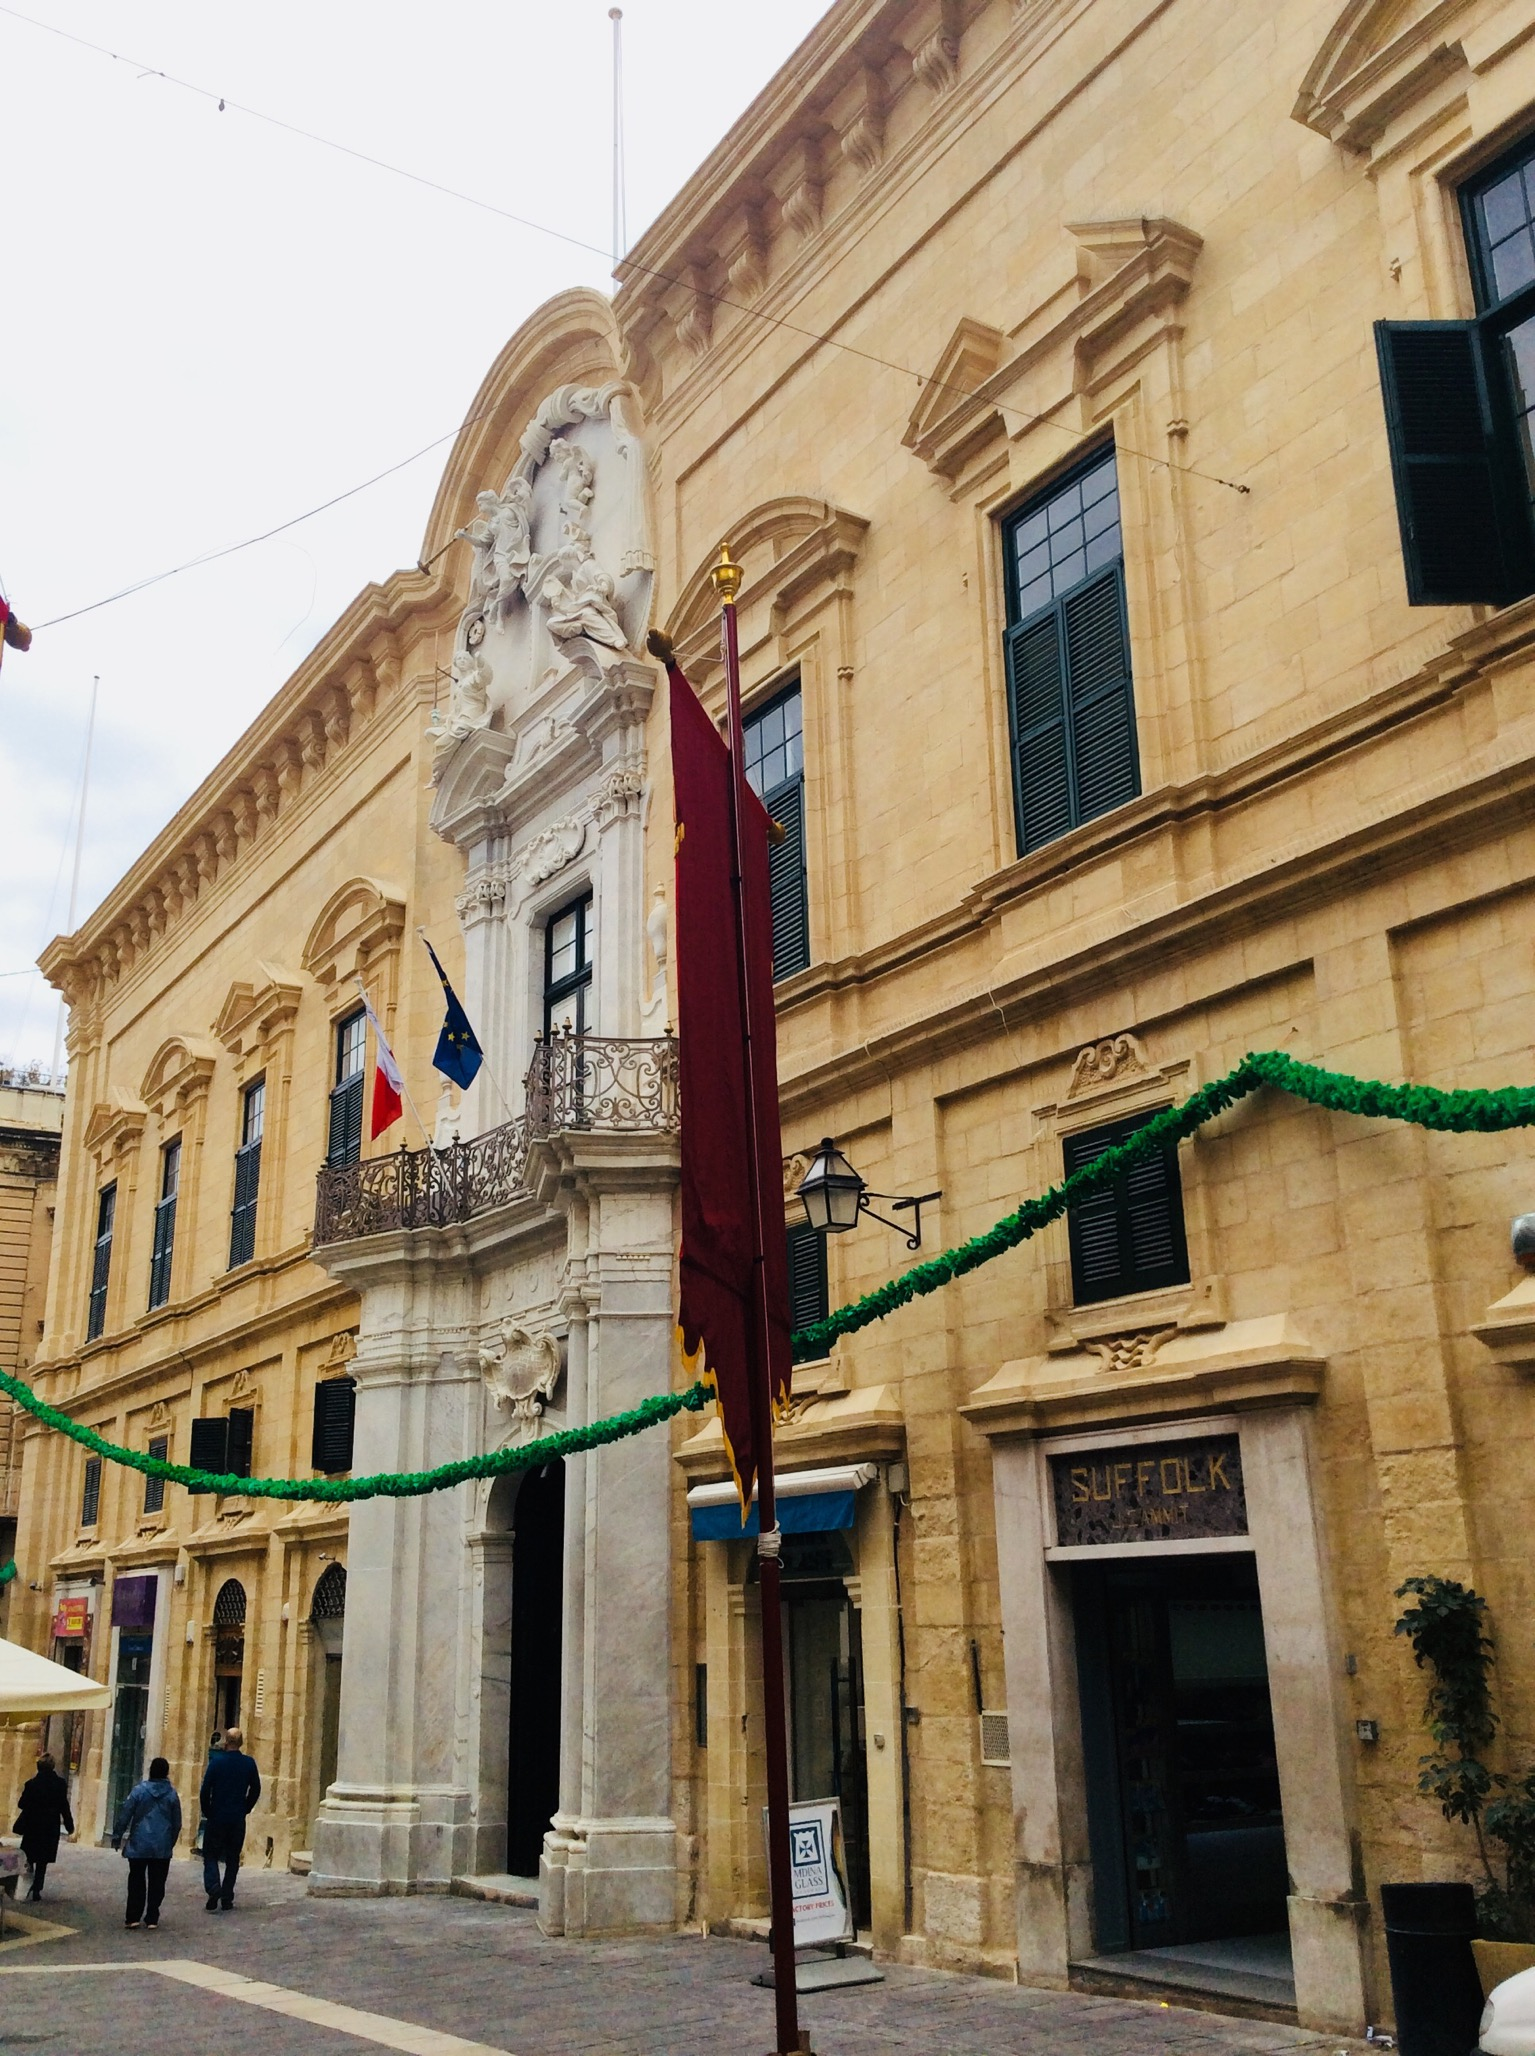 Torture Museum in Mdina: Exposure is not for the faint of heart